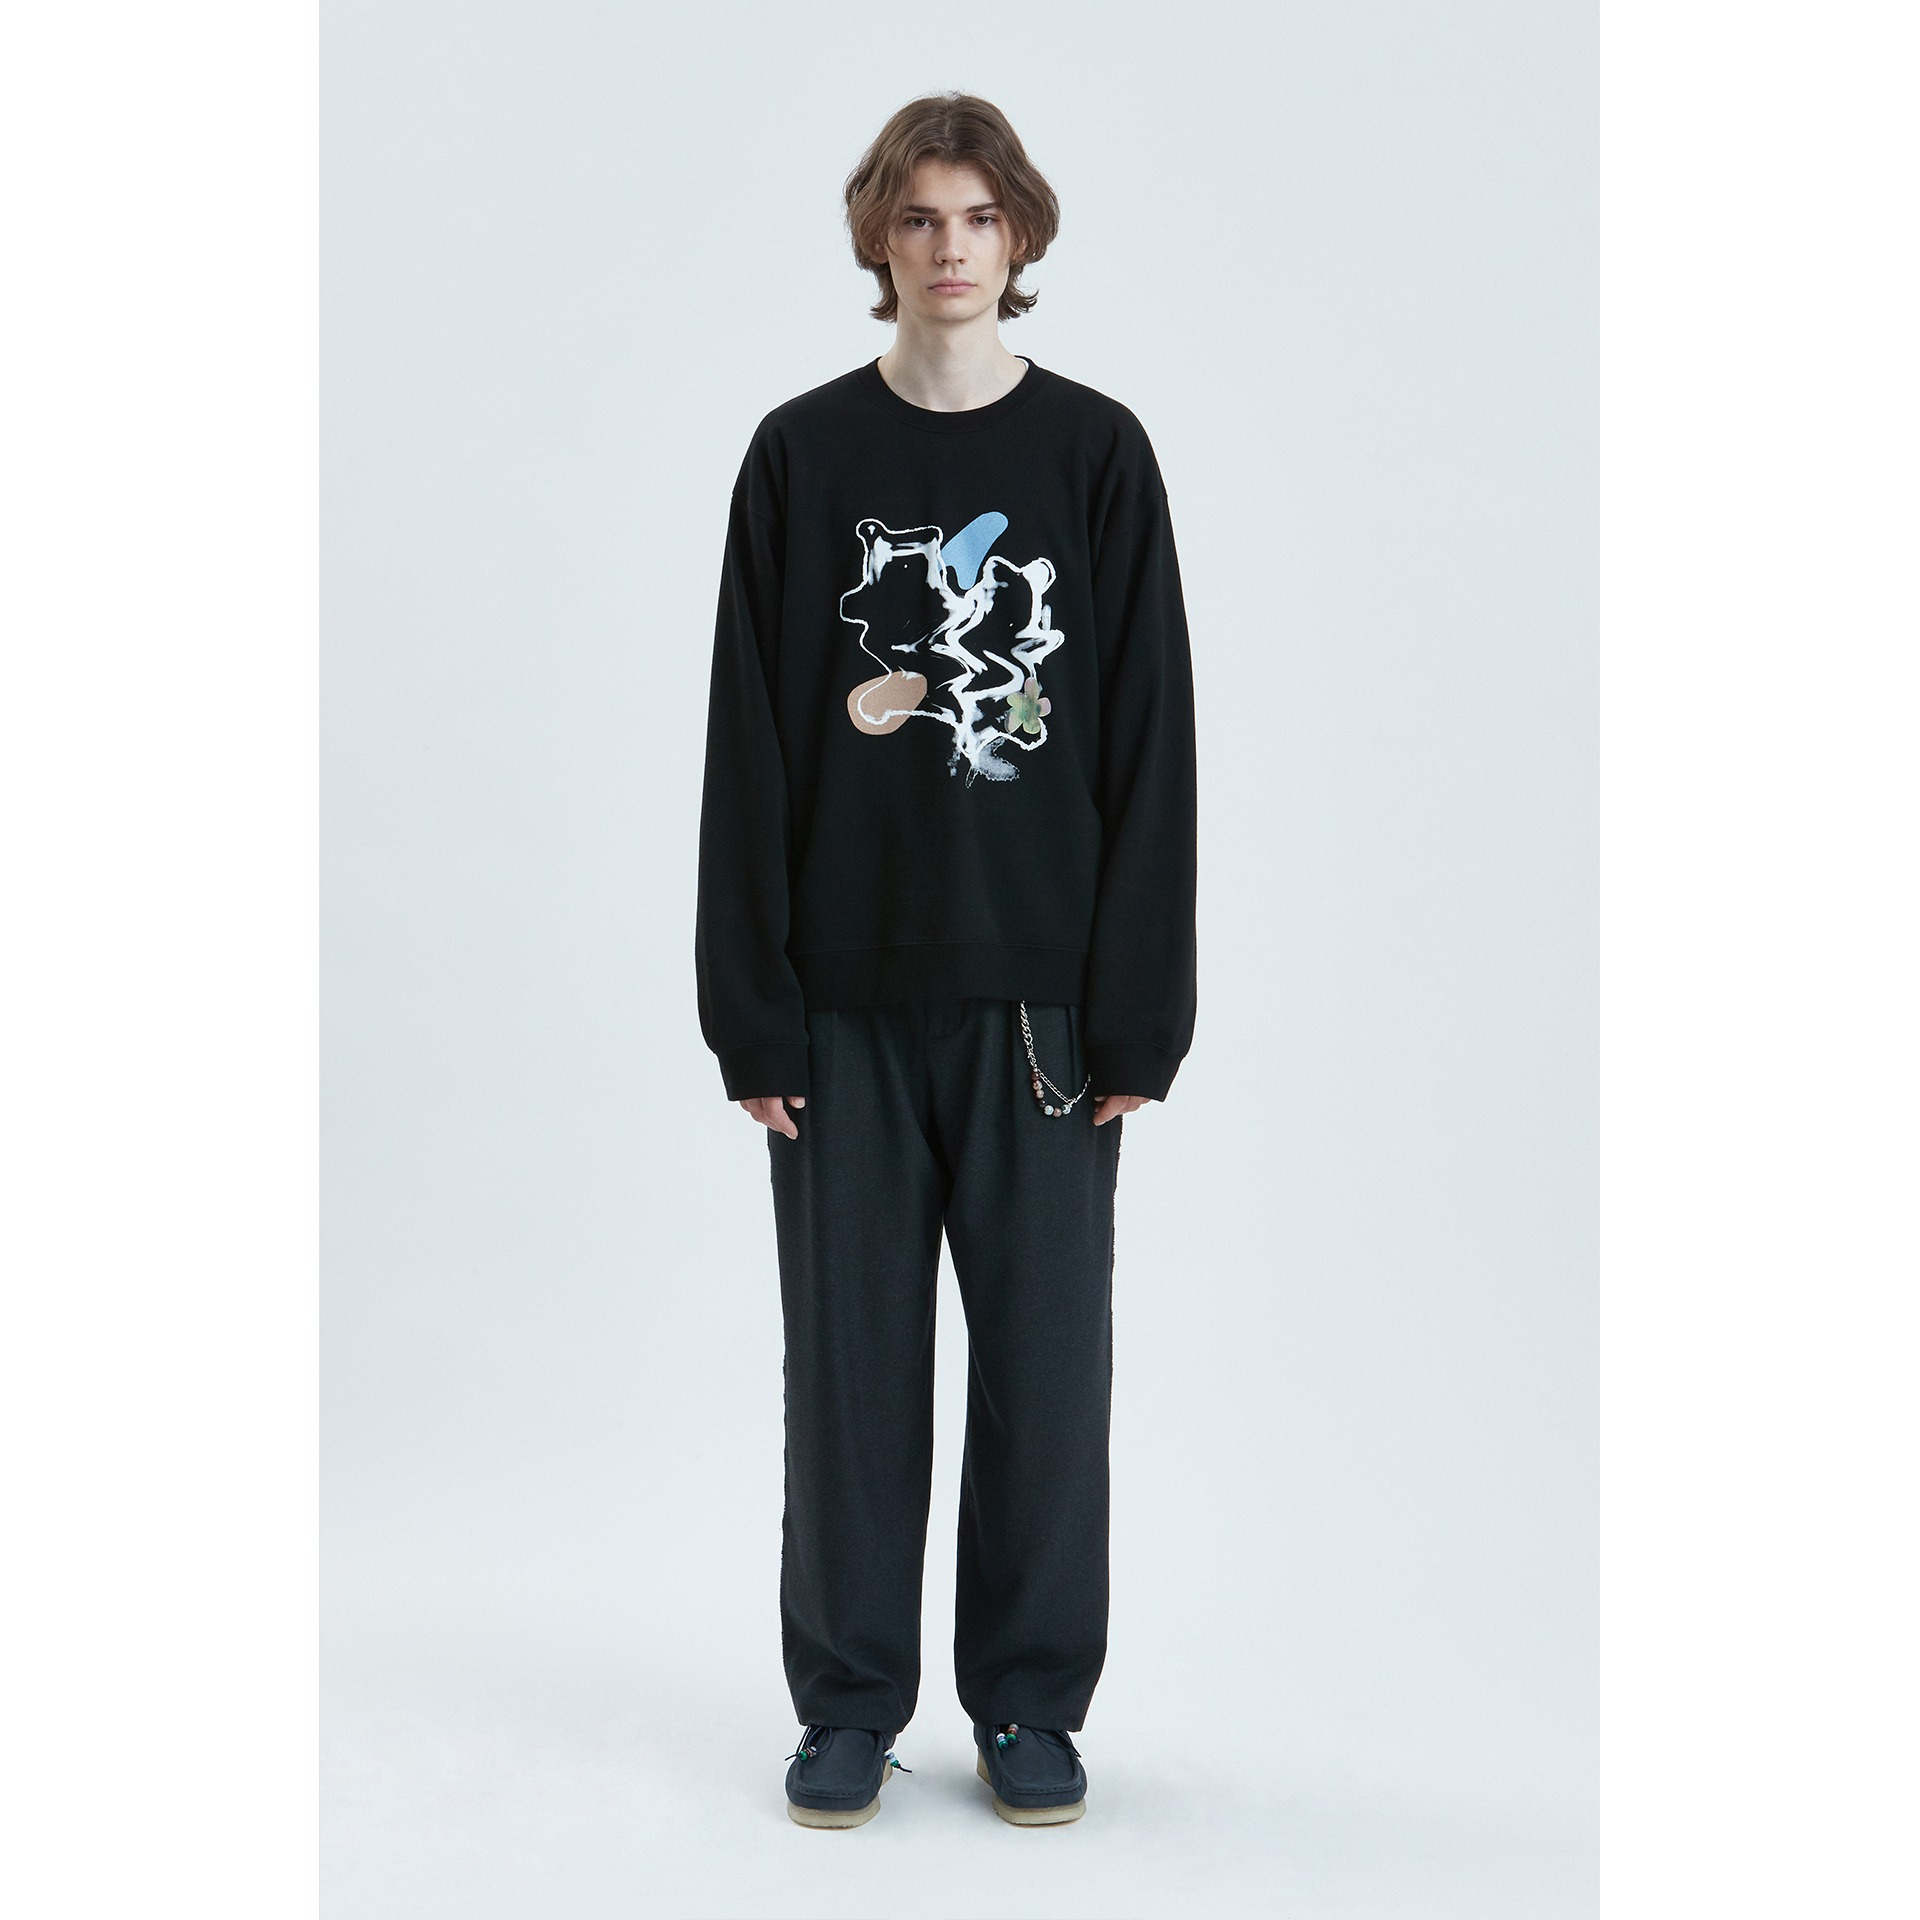 LIFUL SPREAD BEAR SWEATSHIRT black